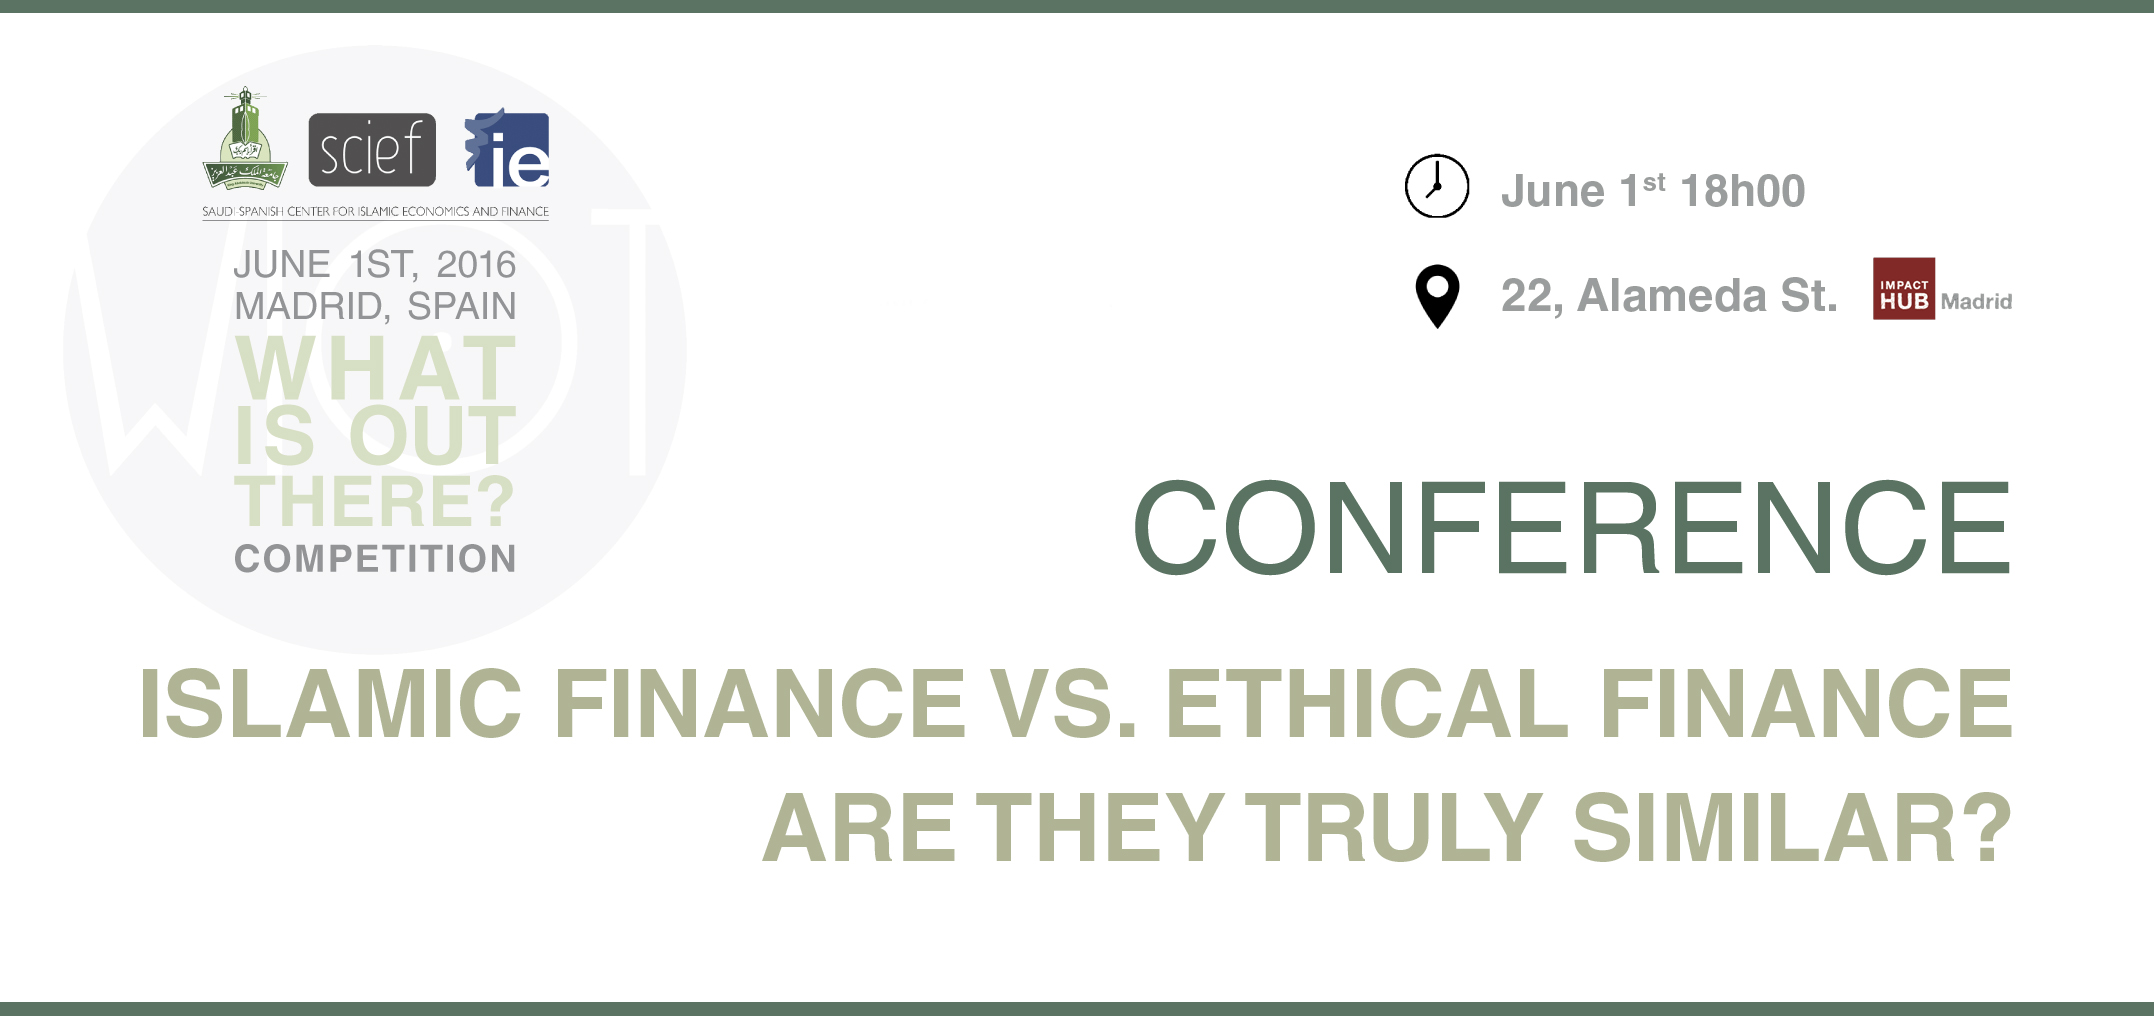 ISLAMIC FINANCE VS. ETHICAL FINANCE ARE THEY TRULY SIMILAR?